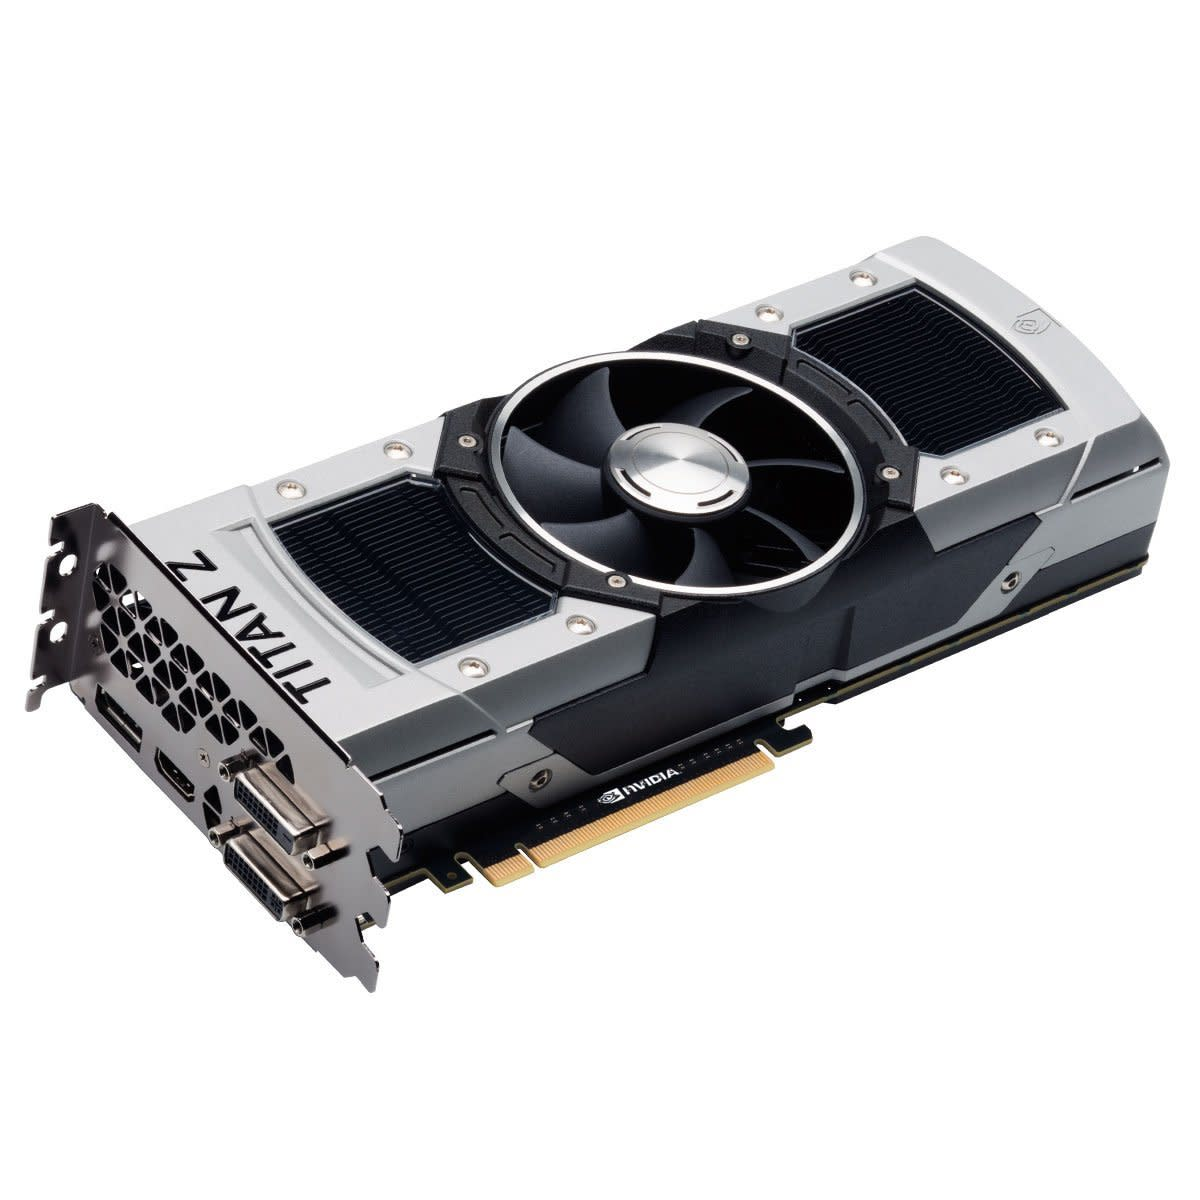 TitanZ Graphics Card from NVIDIA